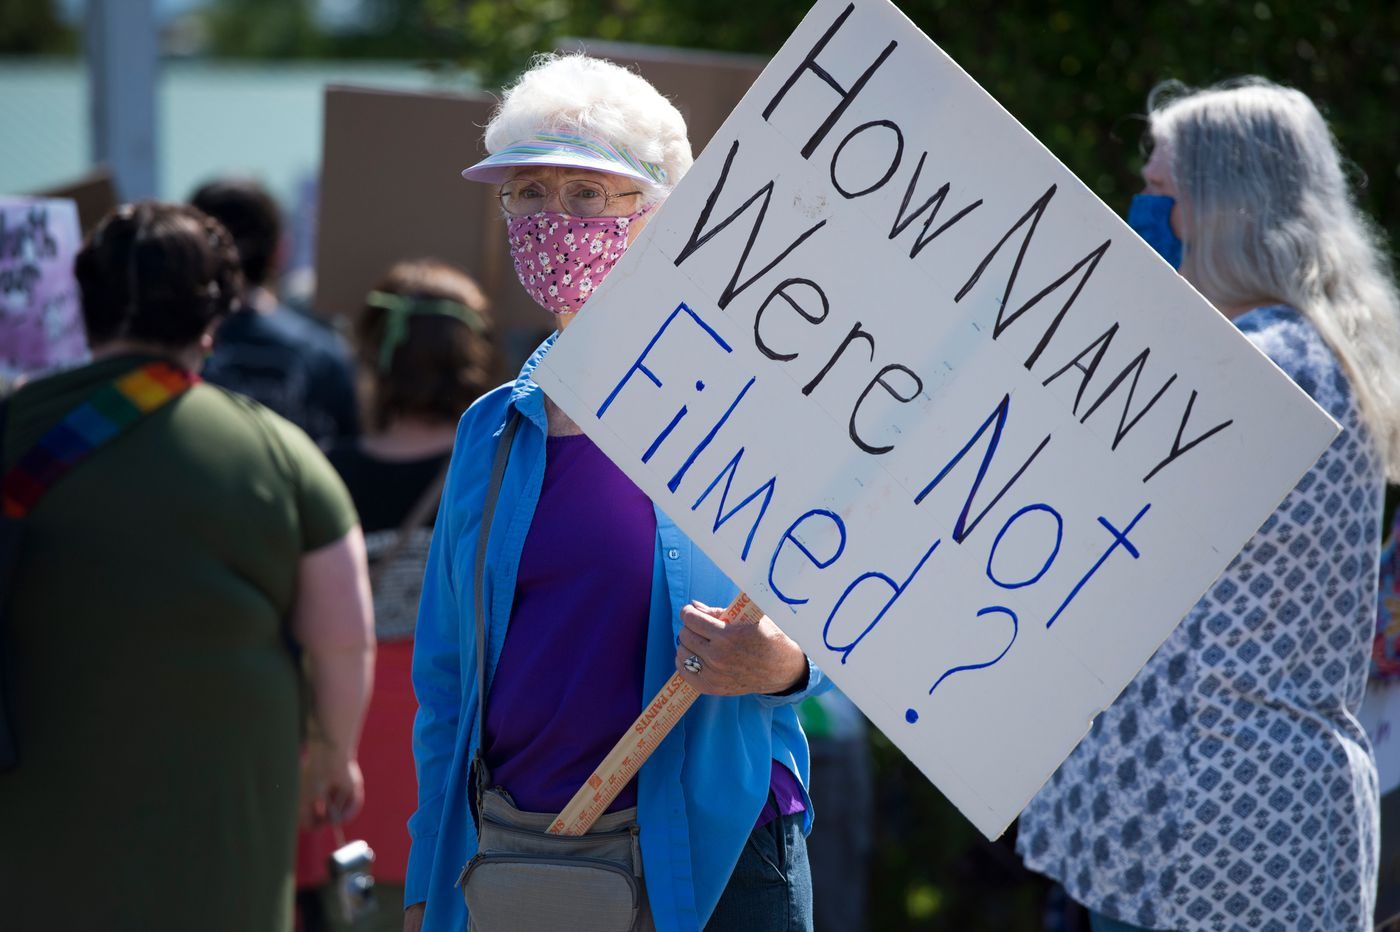 A protester holds a sign at the gathering. A large crowd gathered and marched through Palmer to protest racism and police brutality on Saturday, June 6, 2020. (Marc Lester / ADN)